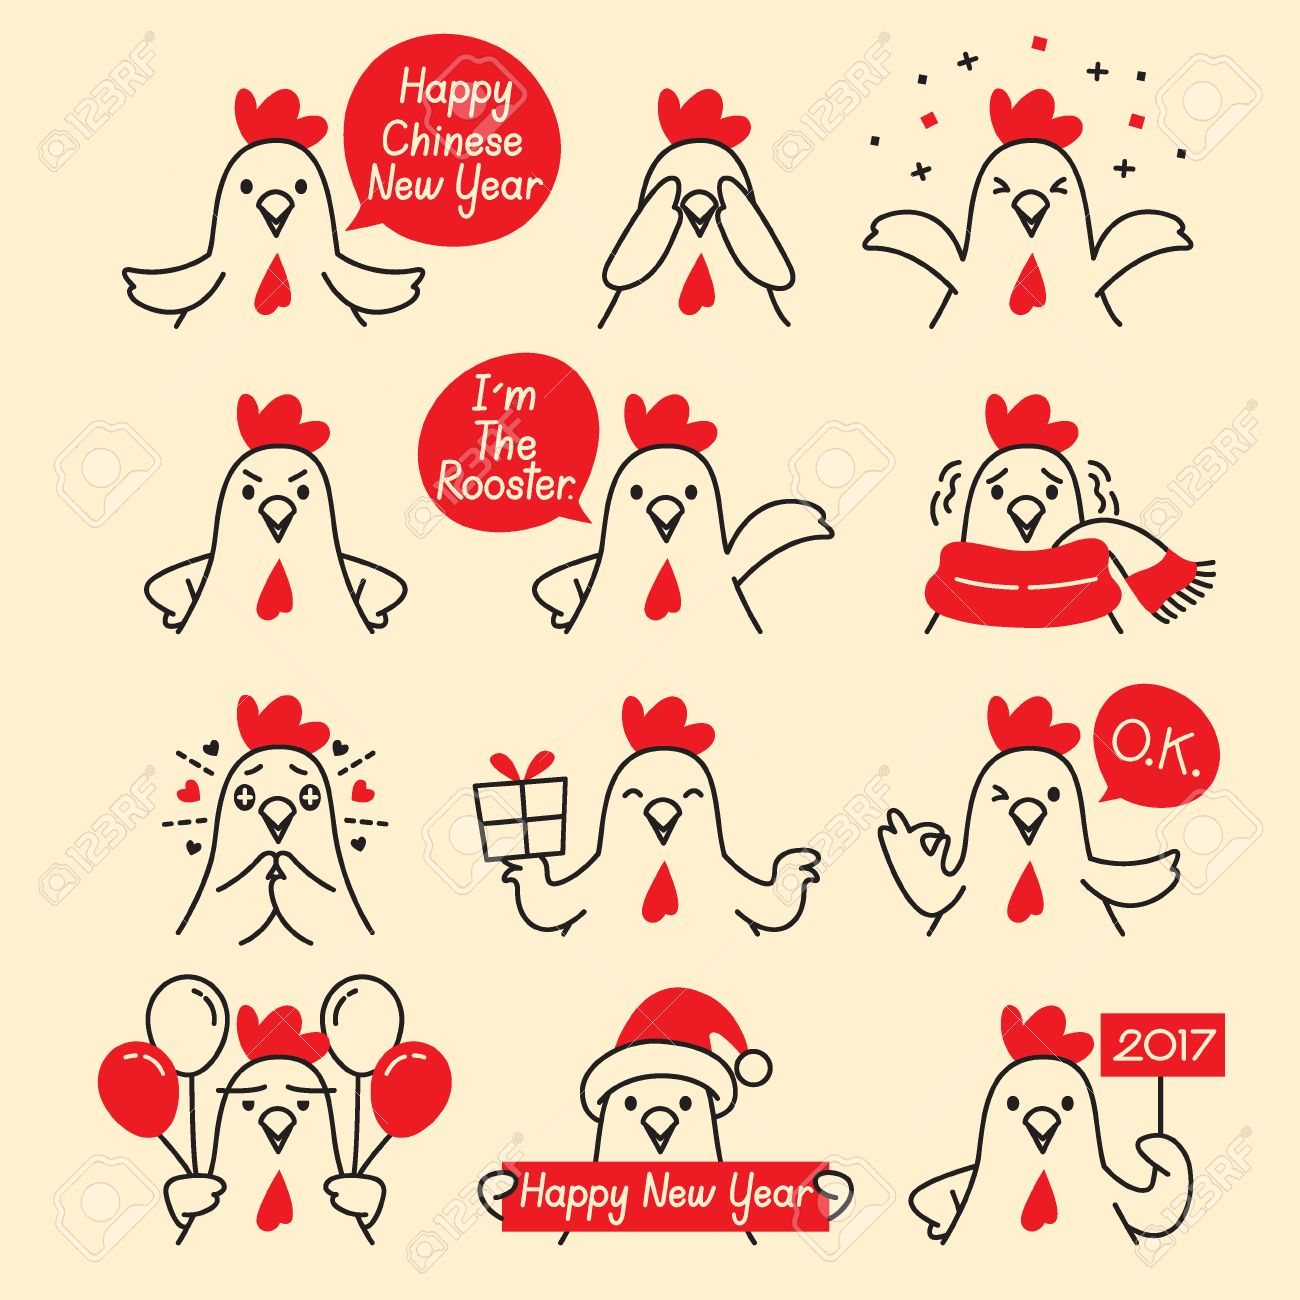 rooster emoticons icons set traditional celebration happy new year china emoji - Chinese New Year Emoji